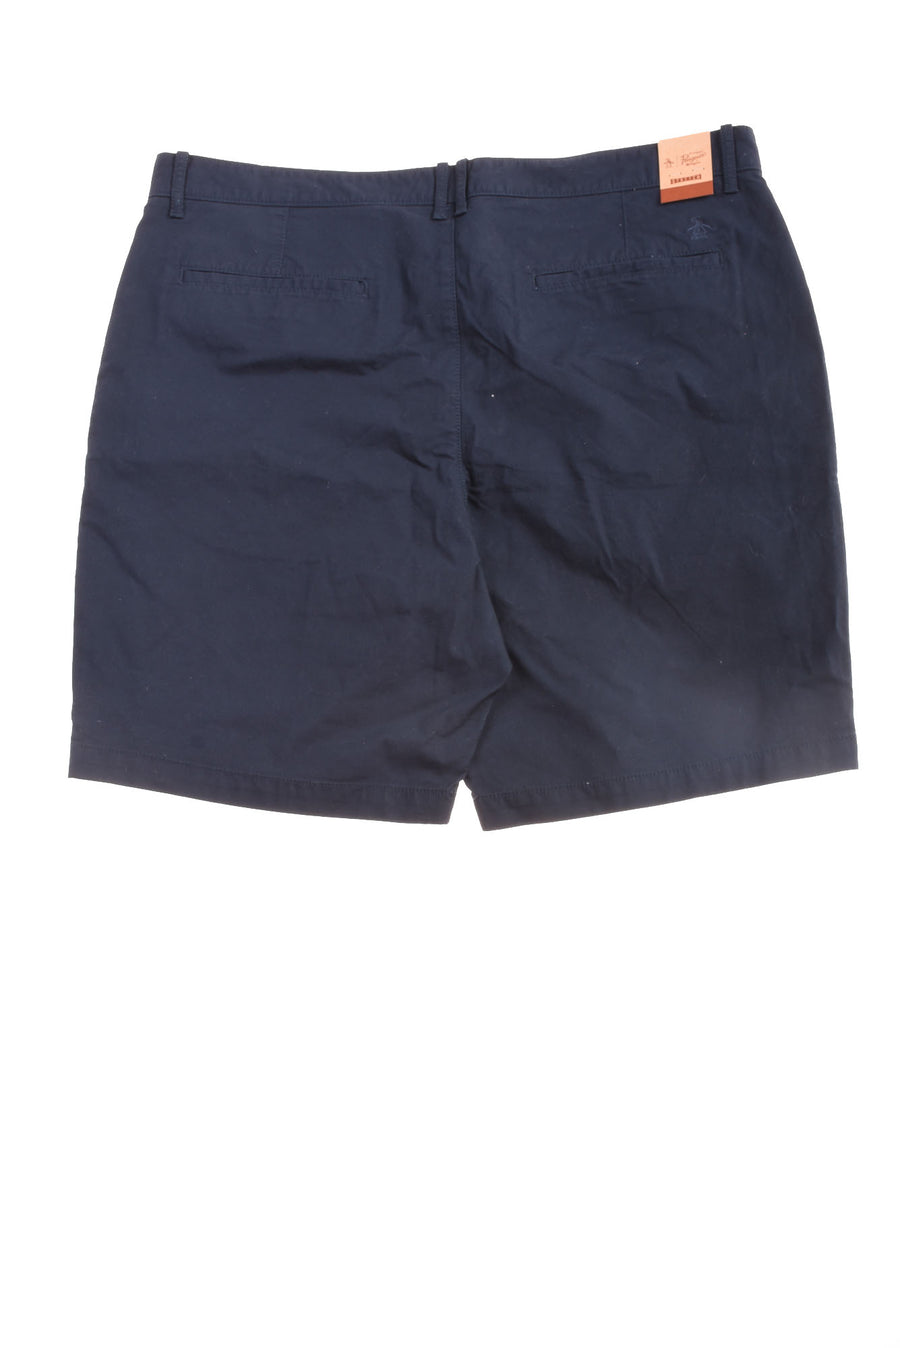 NEW Penguin Men's Shorts 38 Blue